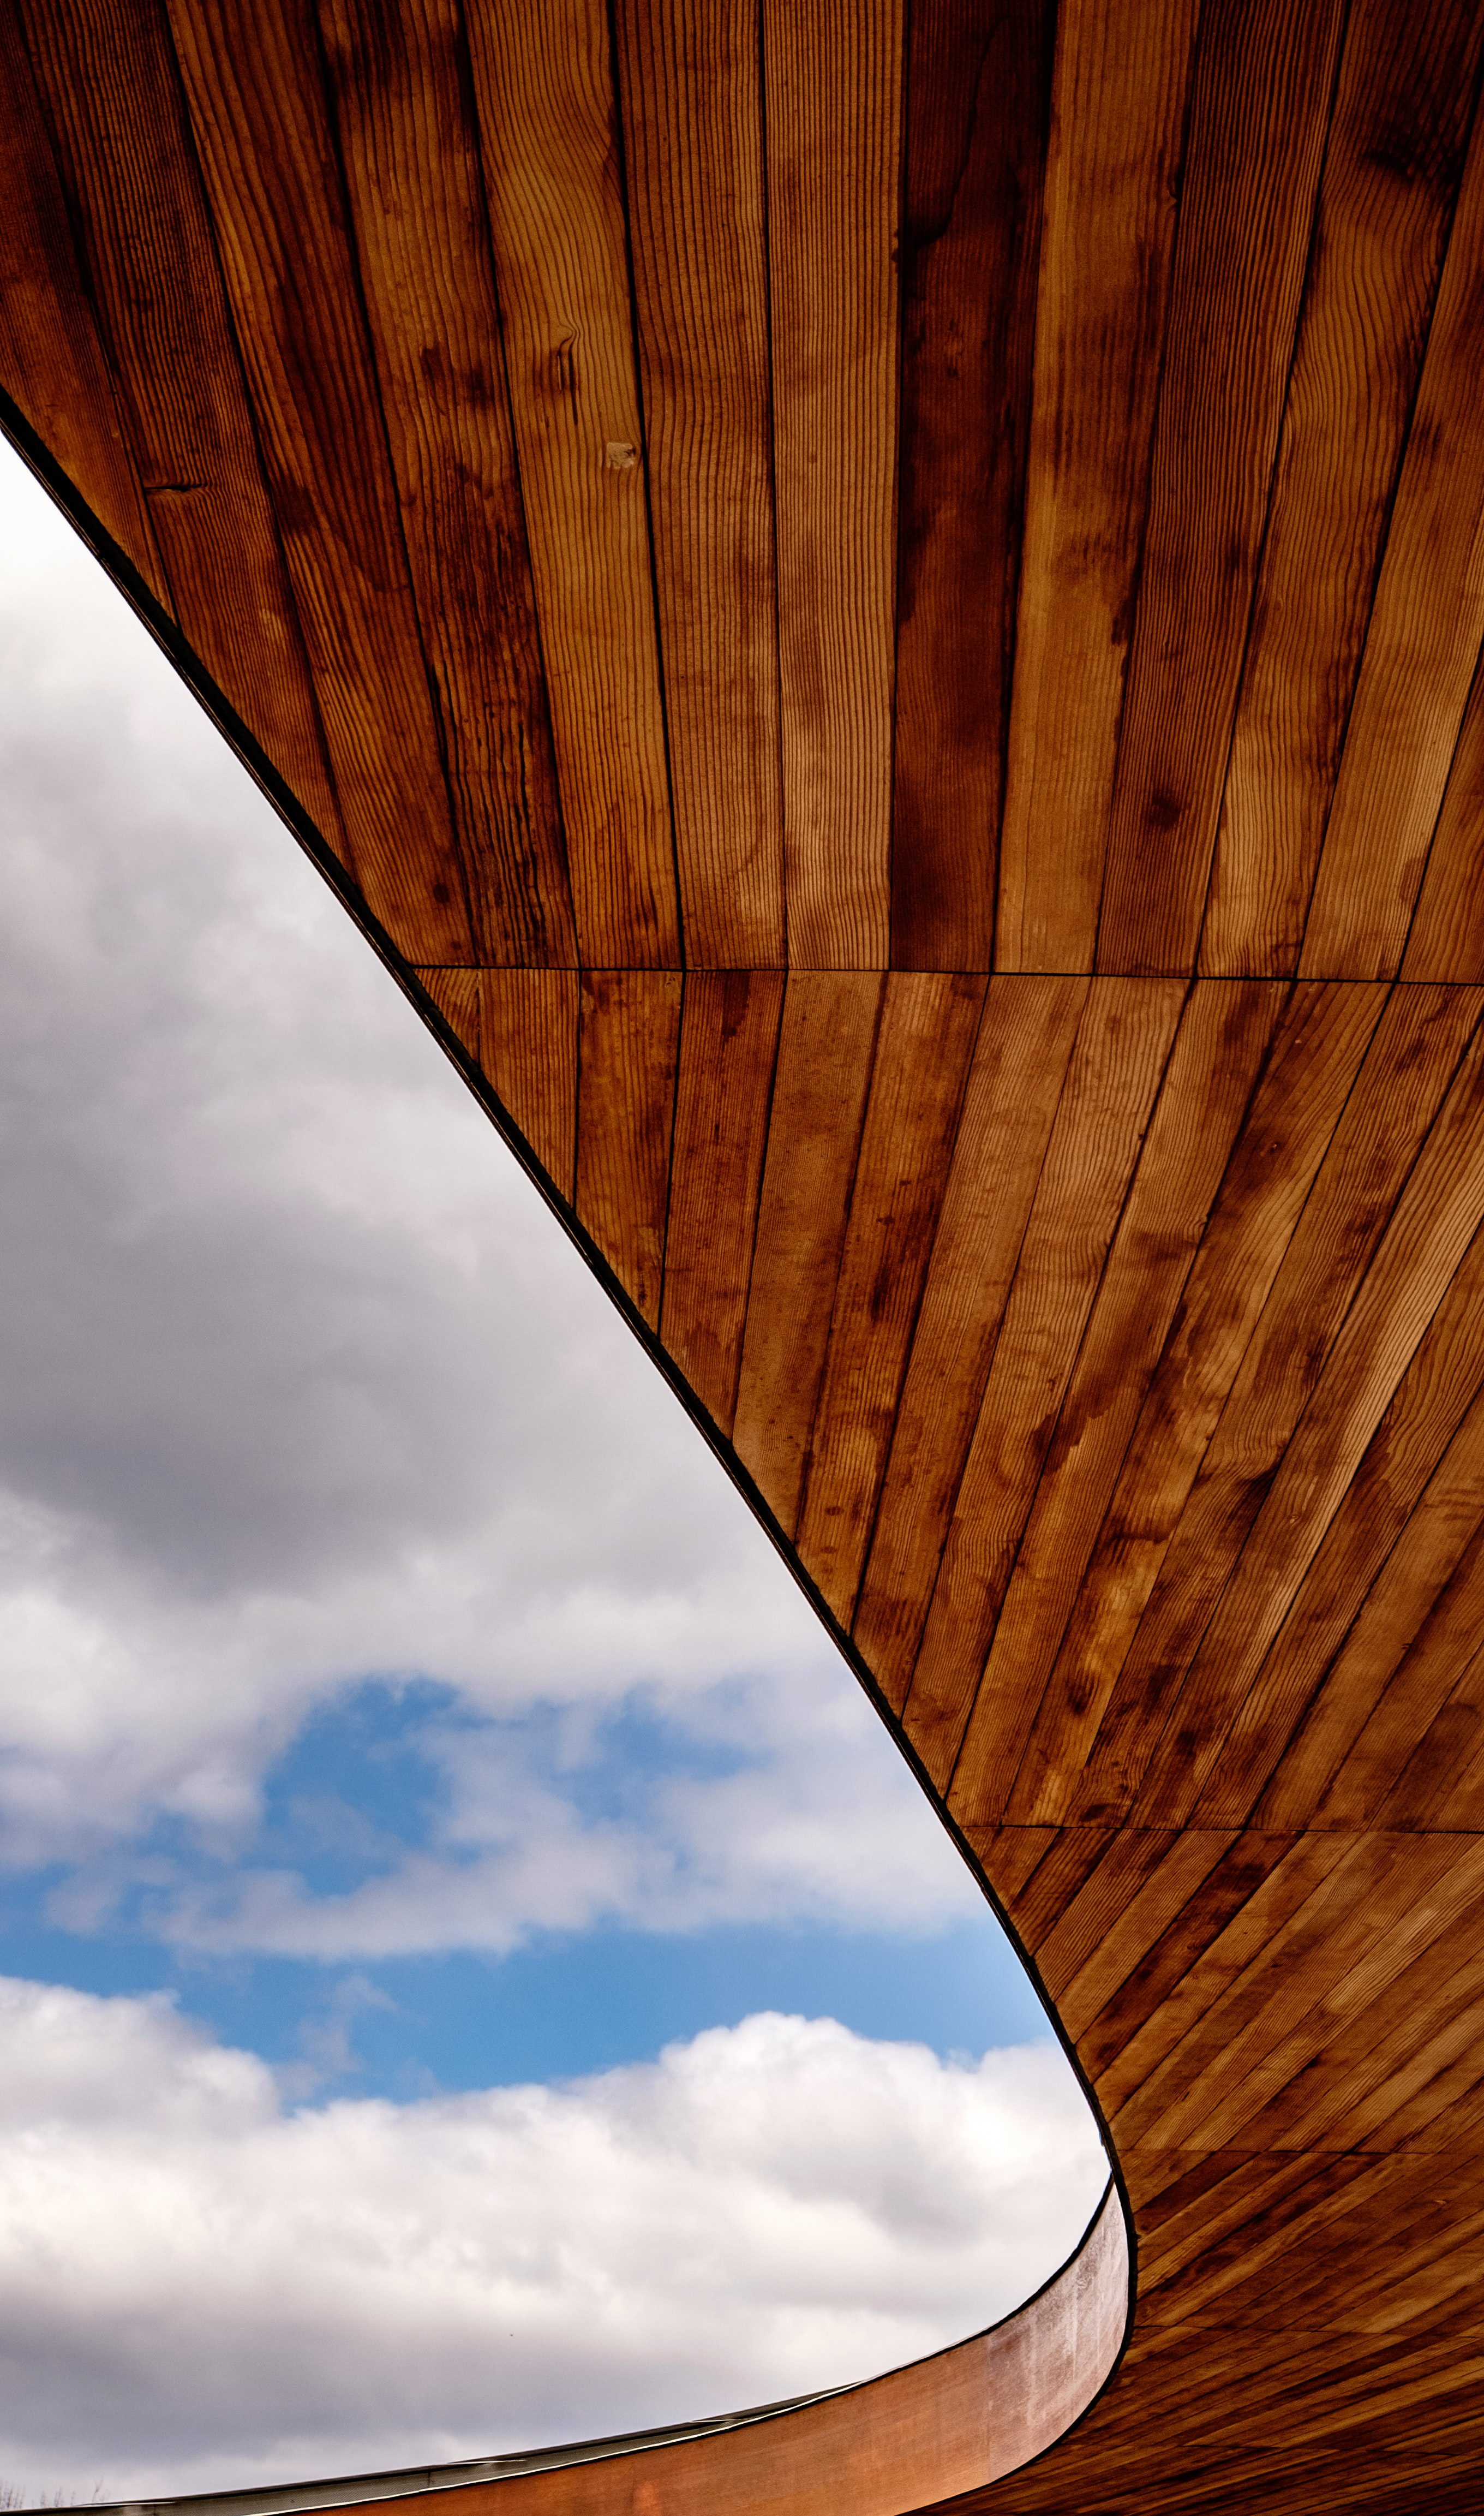 brown parquet wood under the cloudy sky